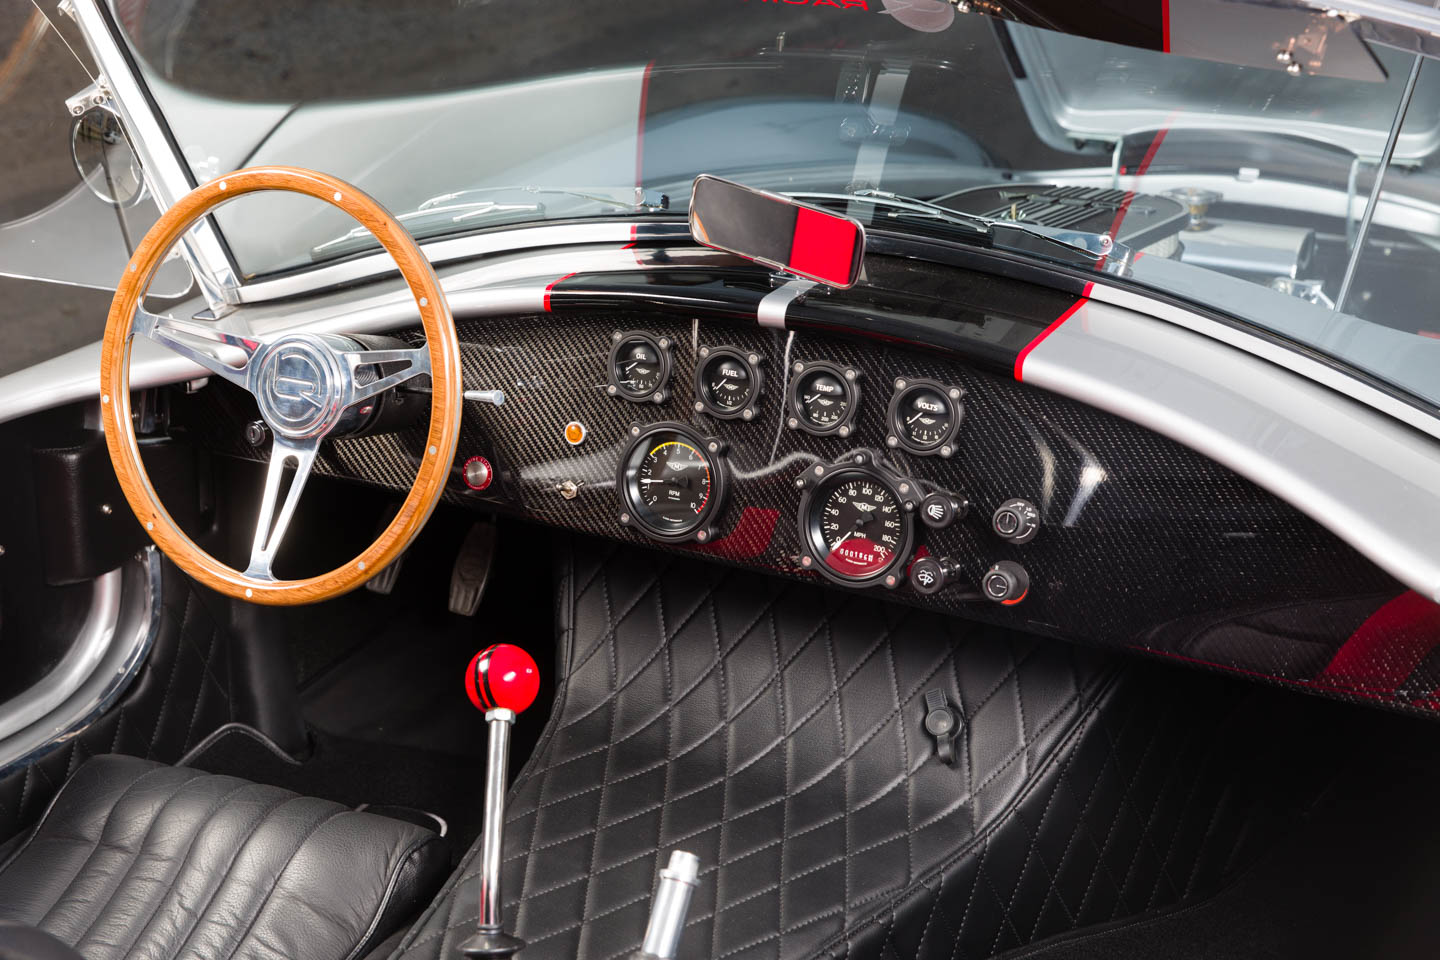 Car interior of the silver Shelby Cobra